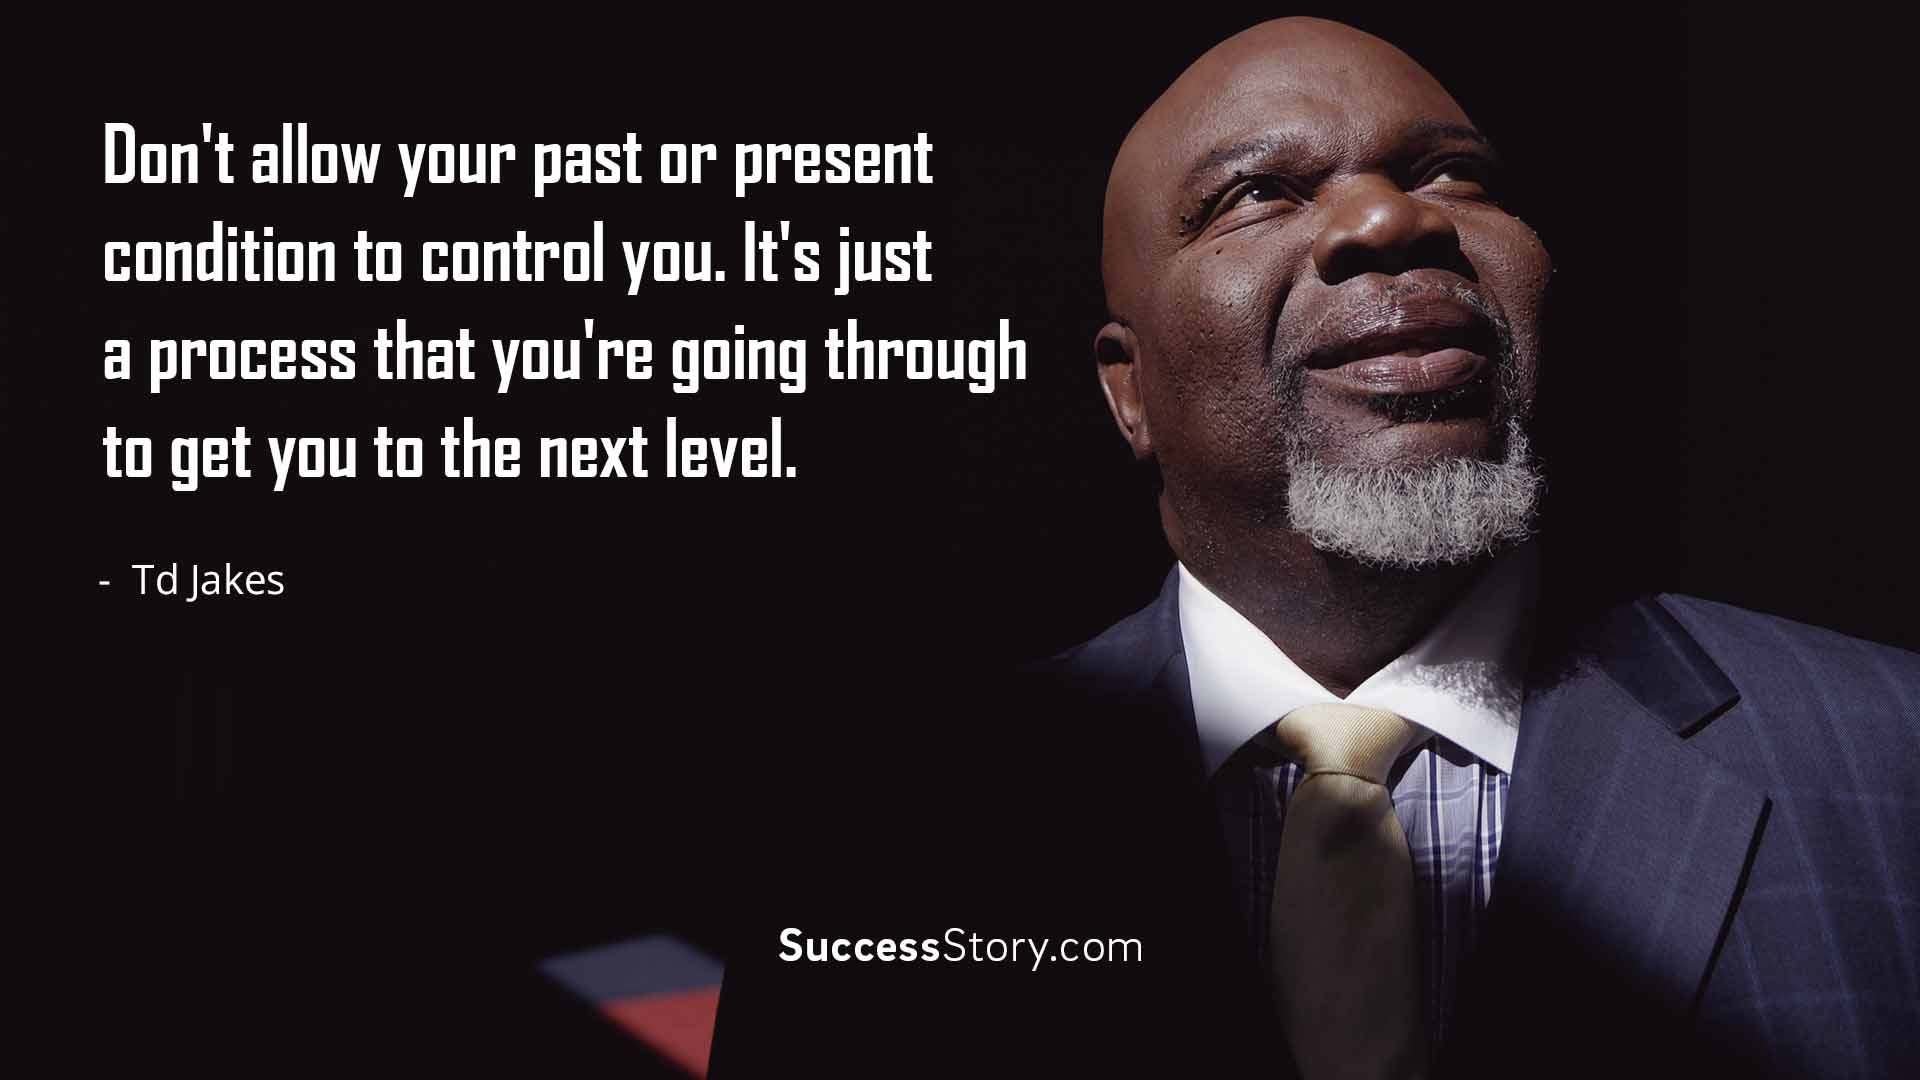 Td Jakes Quotes On Life Expand Your Mindset With Bishop T.d Jakes And Others  Sommy